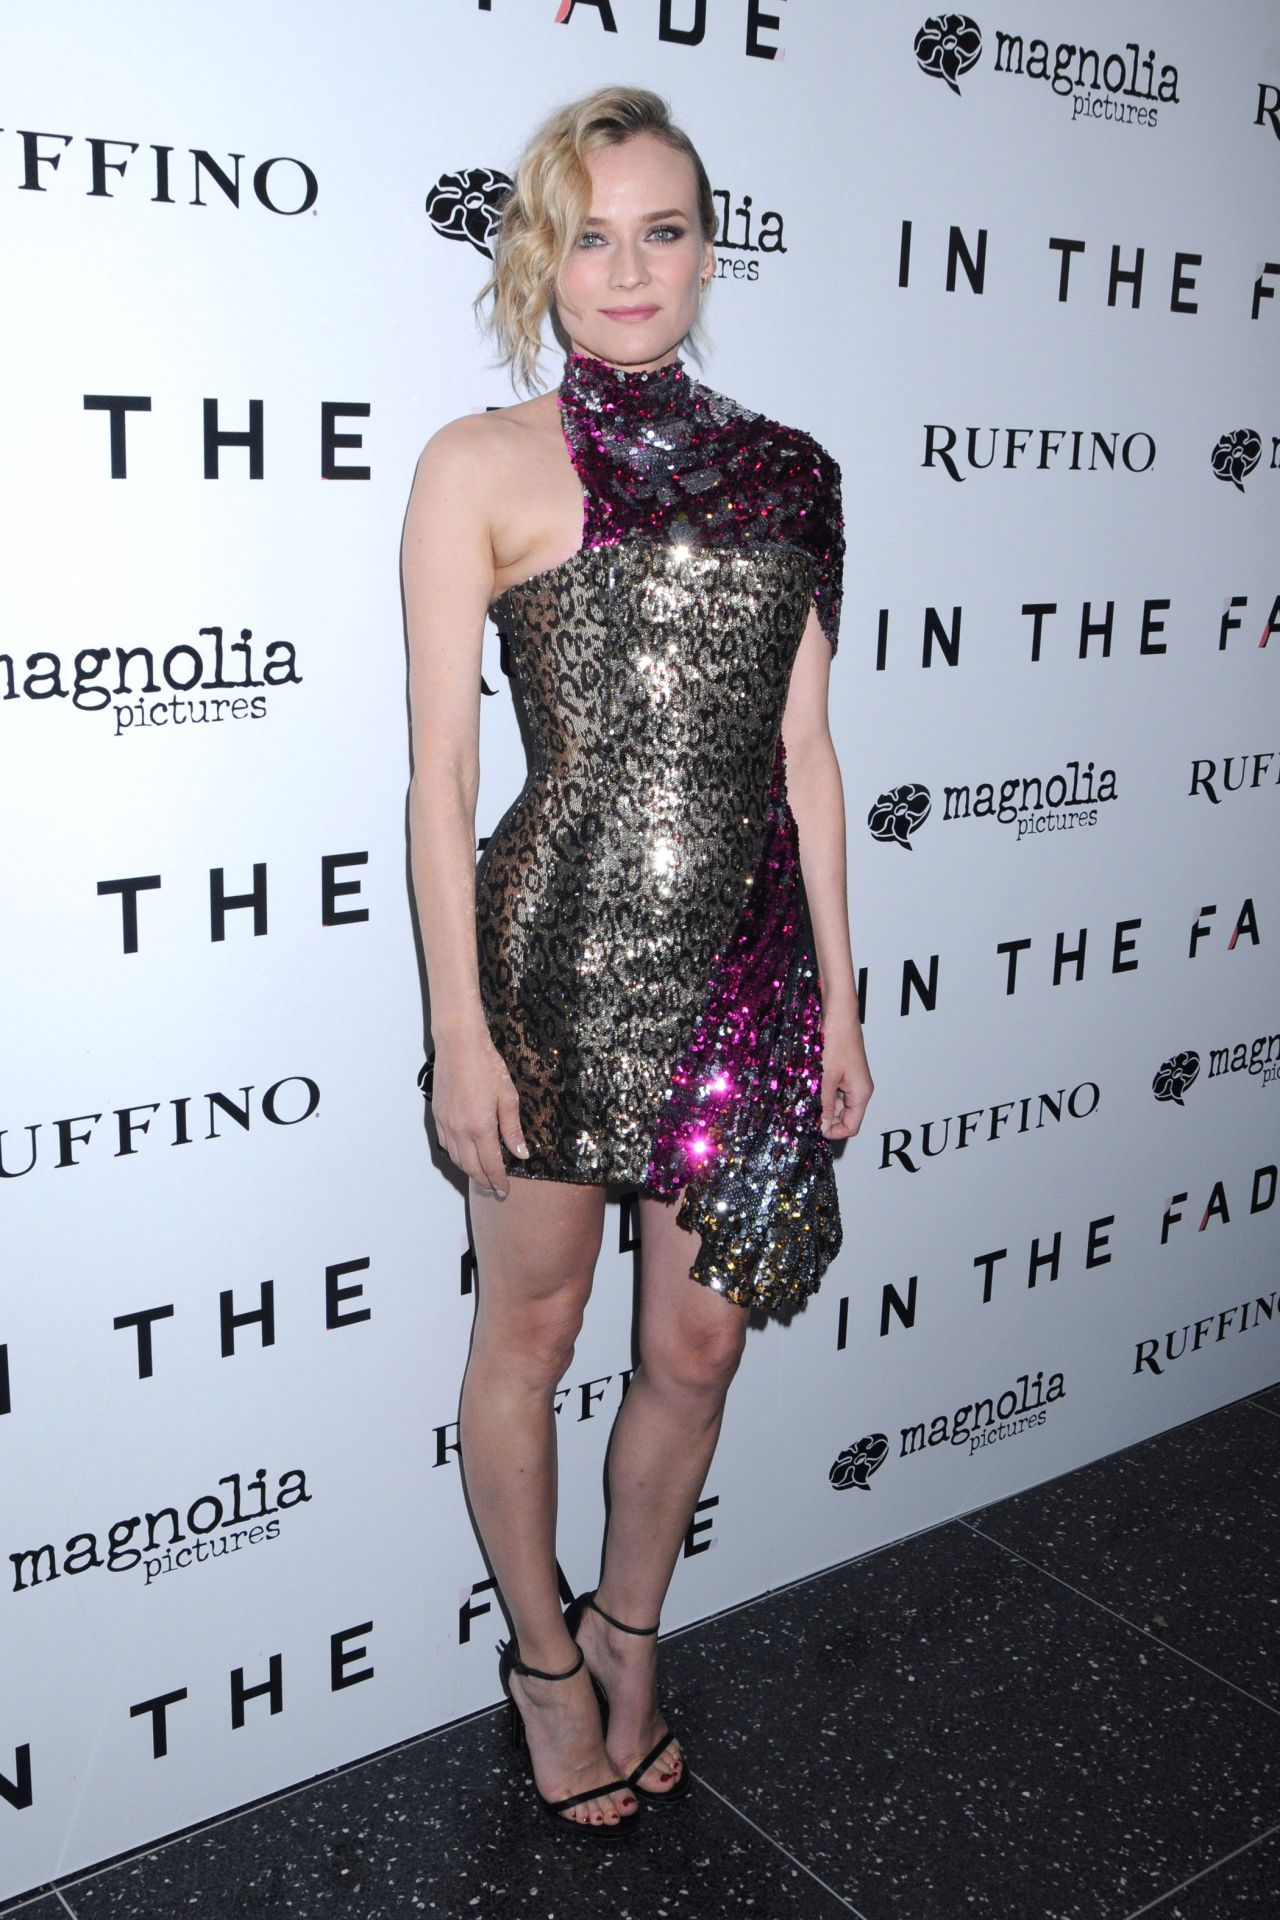 http://celebmafia.com/wp-content/uploads/2017/12/diane-kruger-in-the-fade-premiere-in-new-york-6.jpg